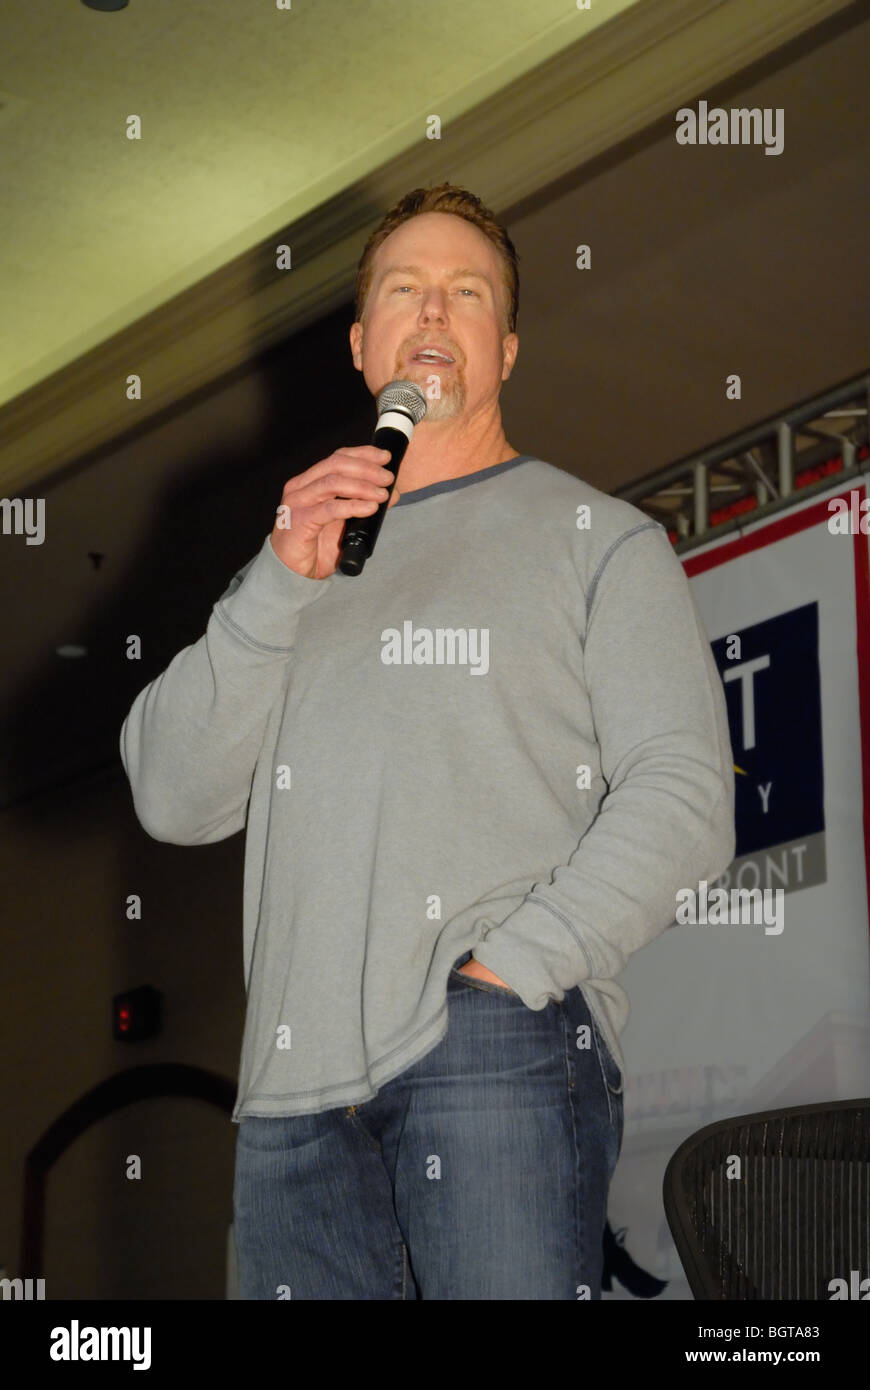 Former Cardinals Major League baseball player Mark McGwire speaks an apology to his hometown crowd in St Louis, Stock Photo